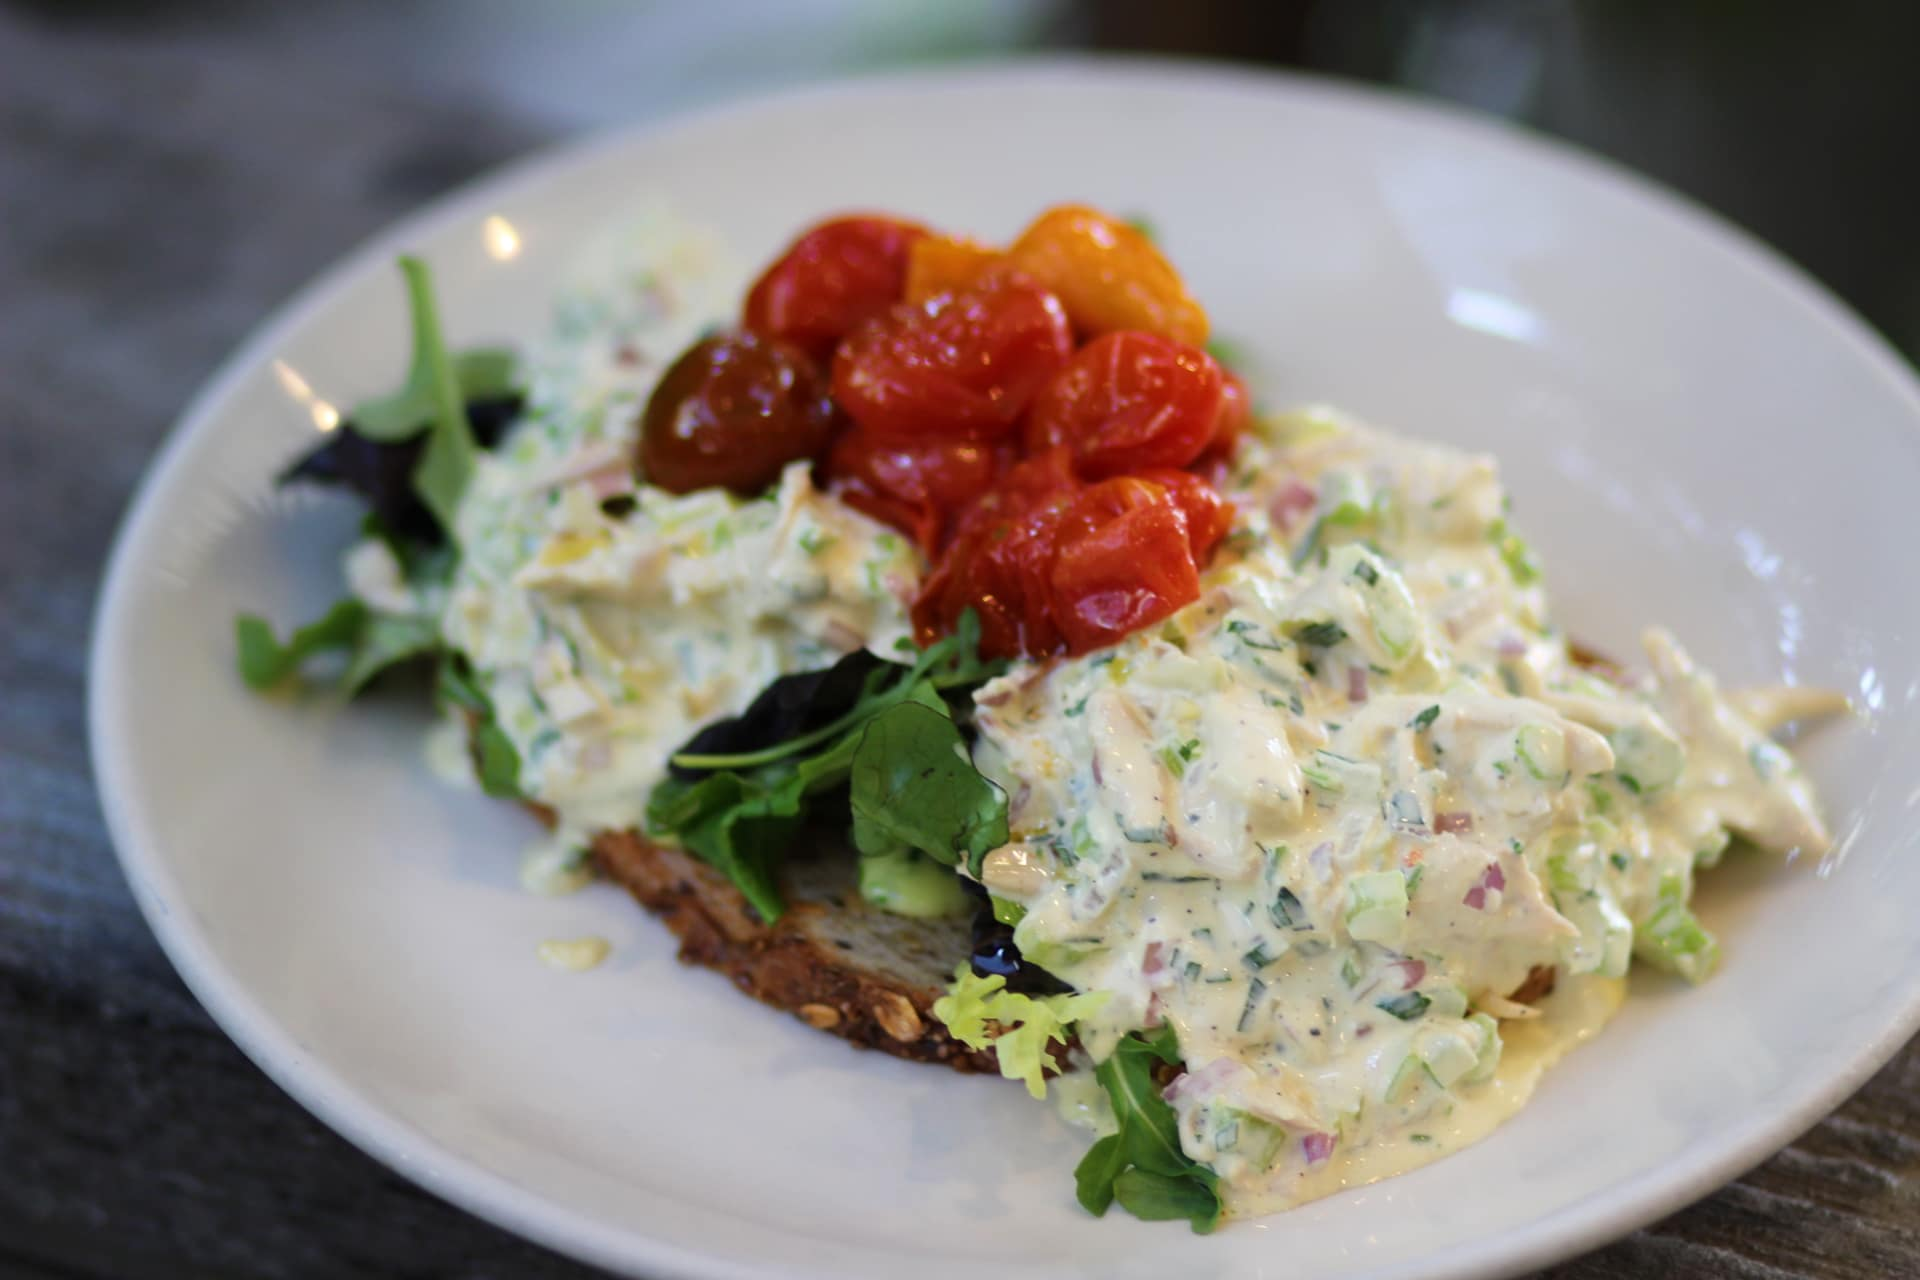 HERB CHICKEN SALAD TARTINE